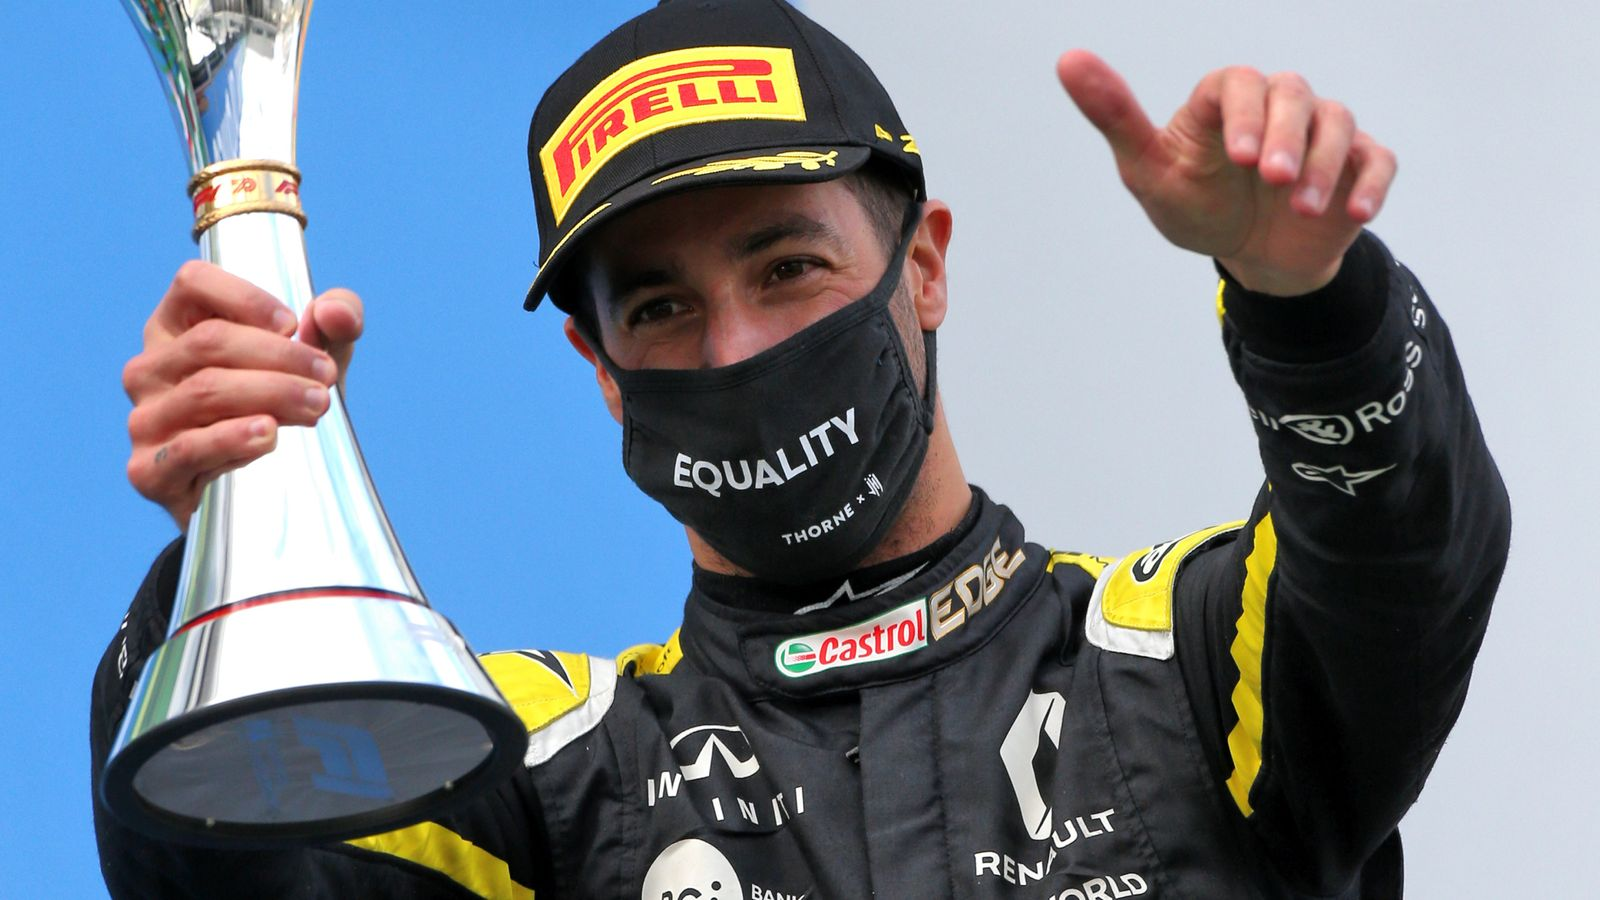 Renault and Daniel Ricciardo: From underachievers to an F1 2020 force